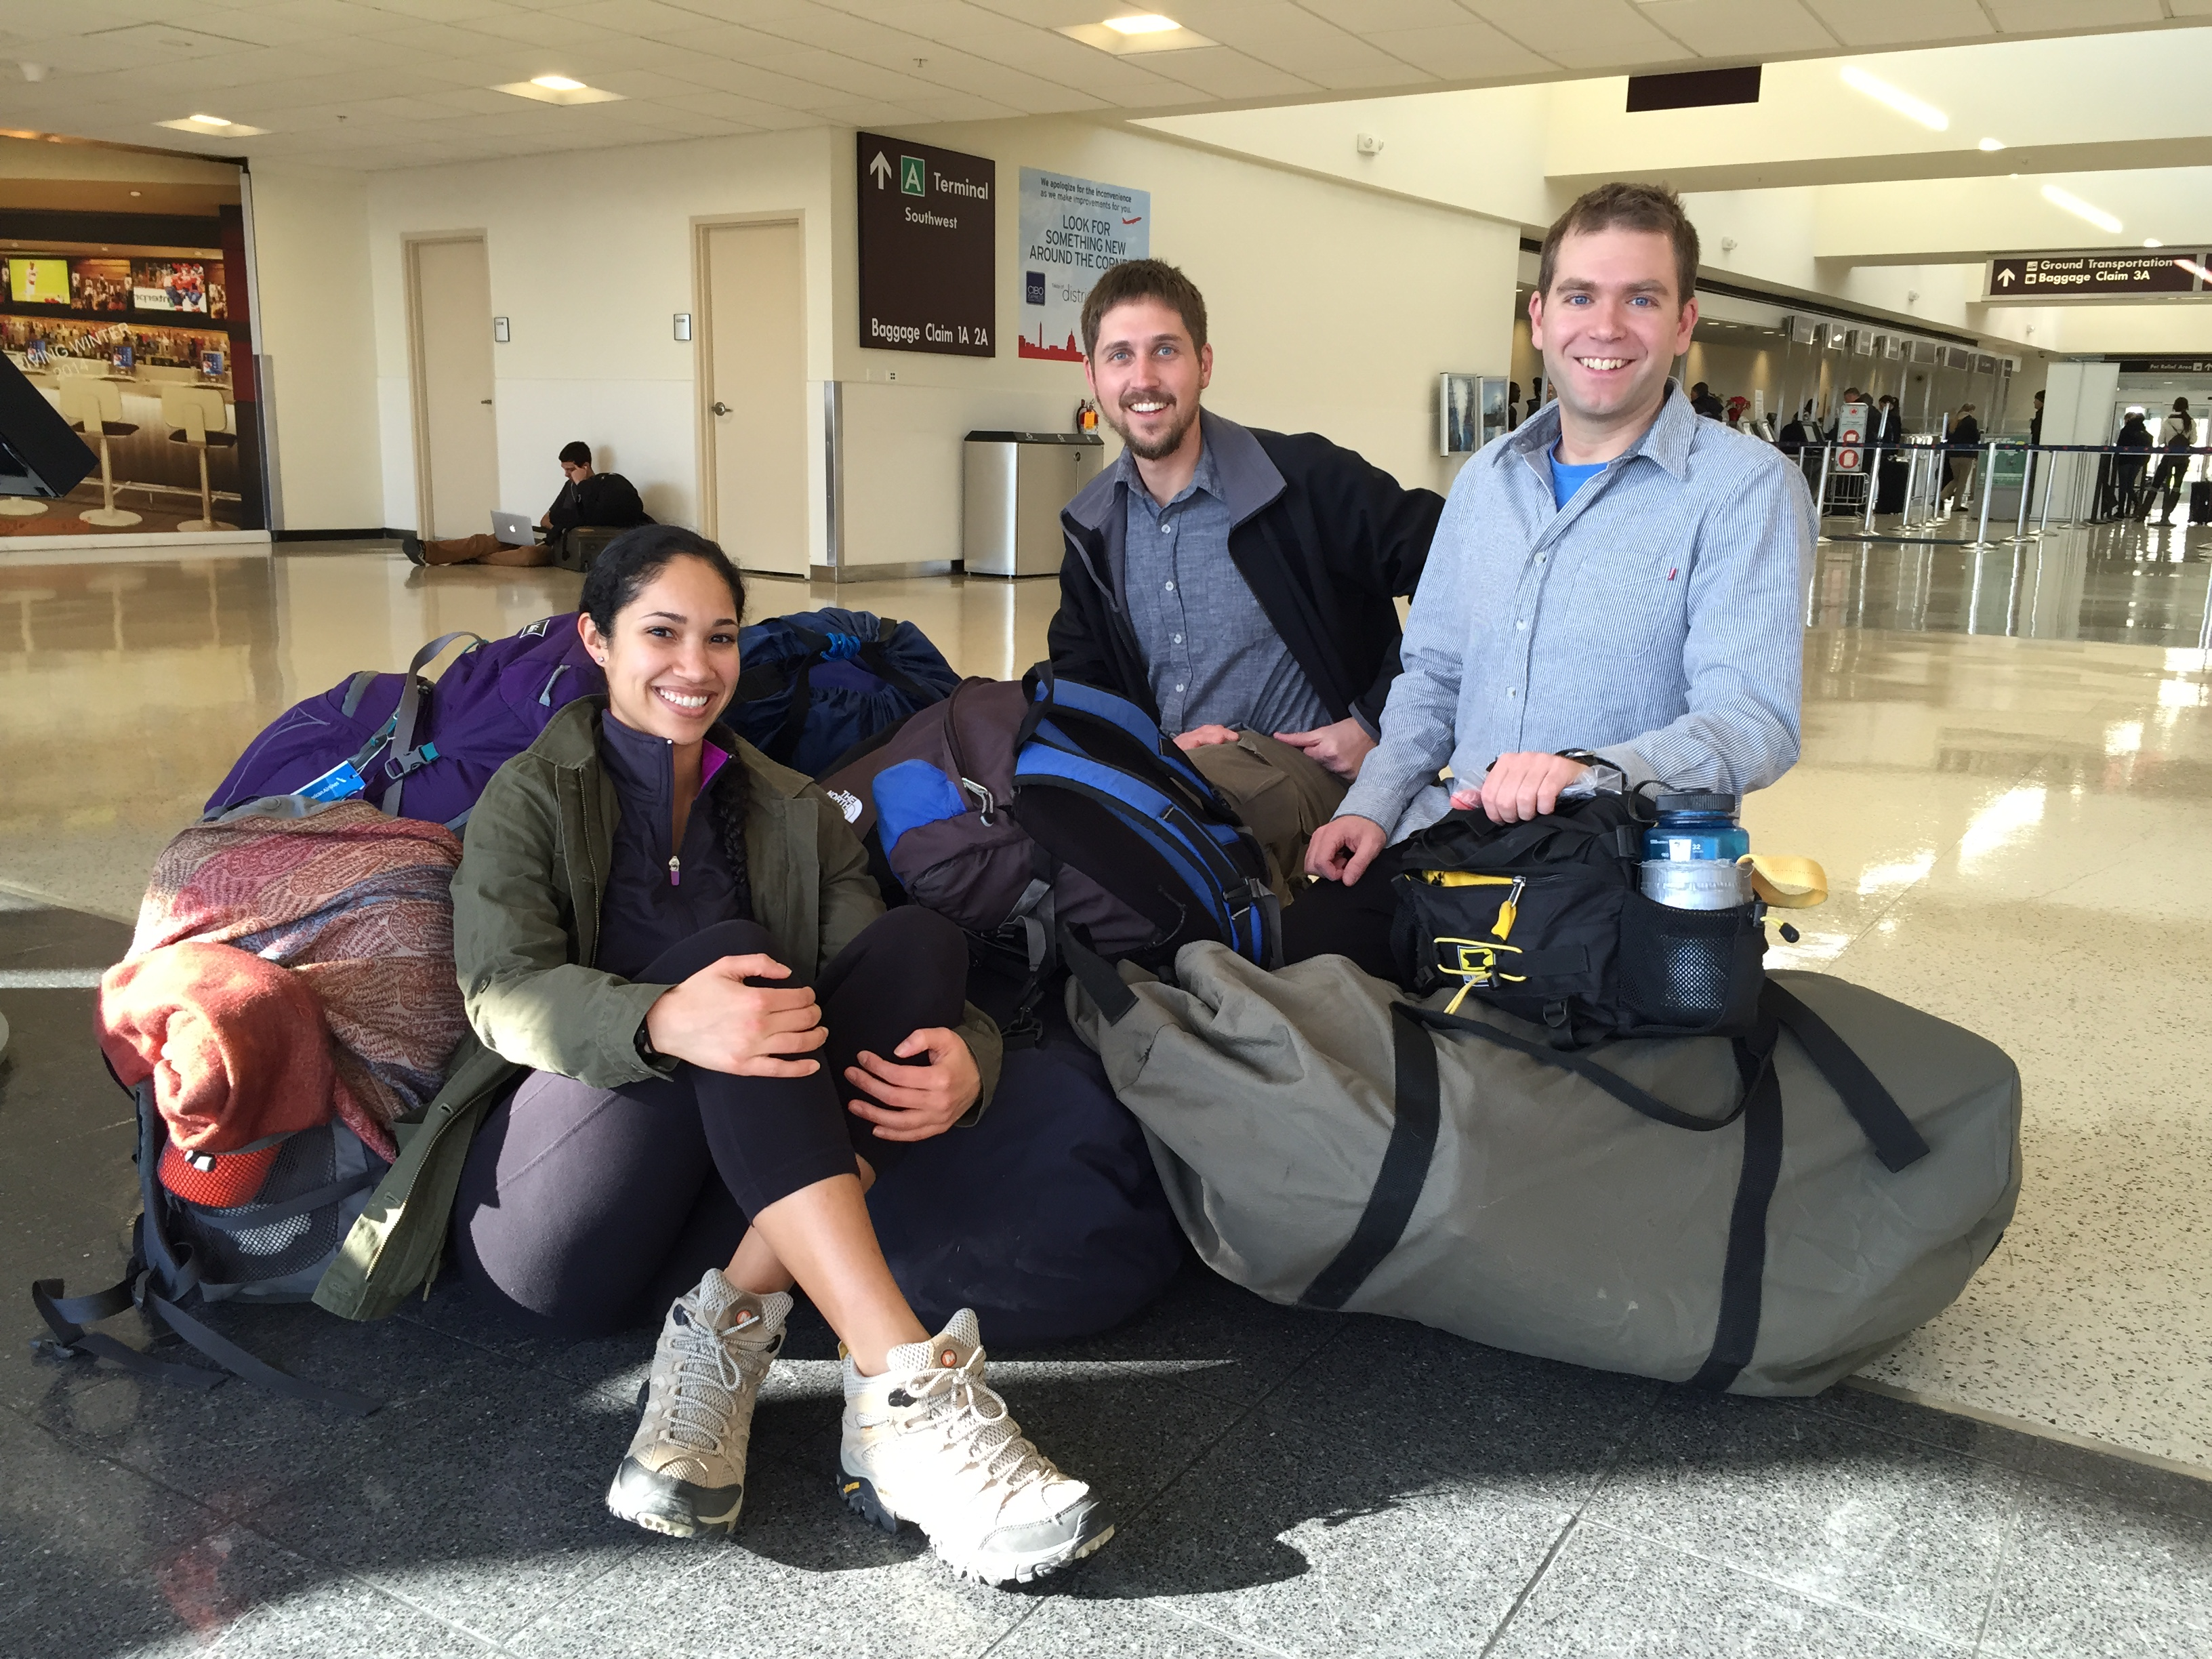 (left to right) Ashley, Gerritt, and Rob are have taken off from Washington, DC for Mbokop